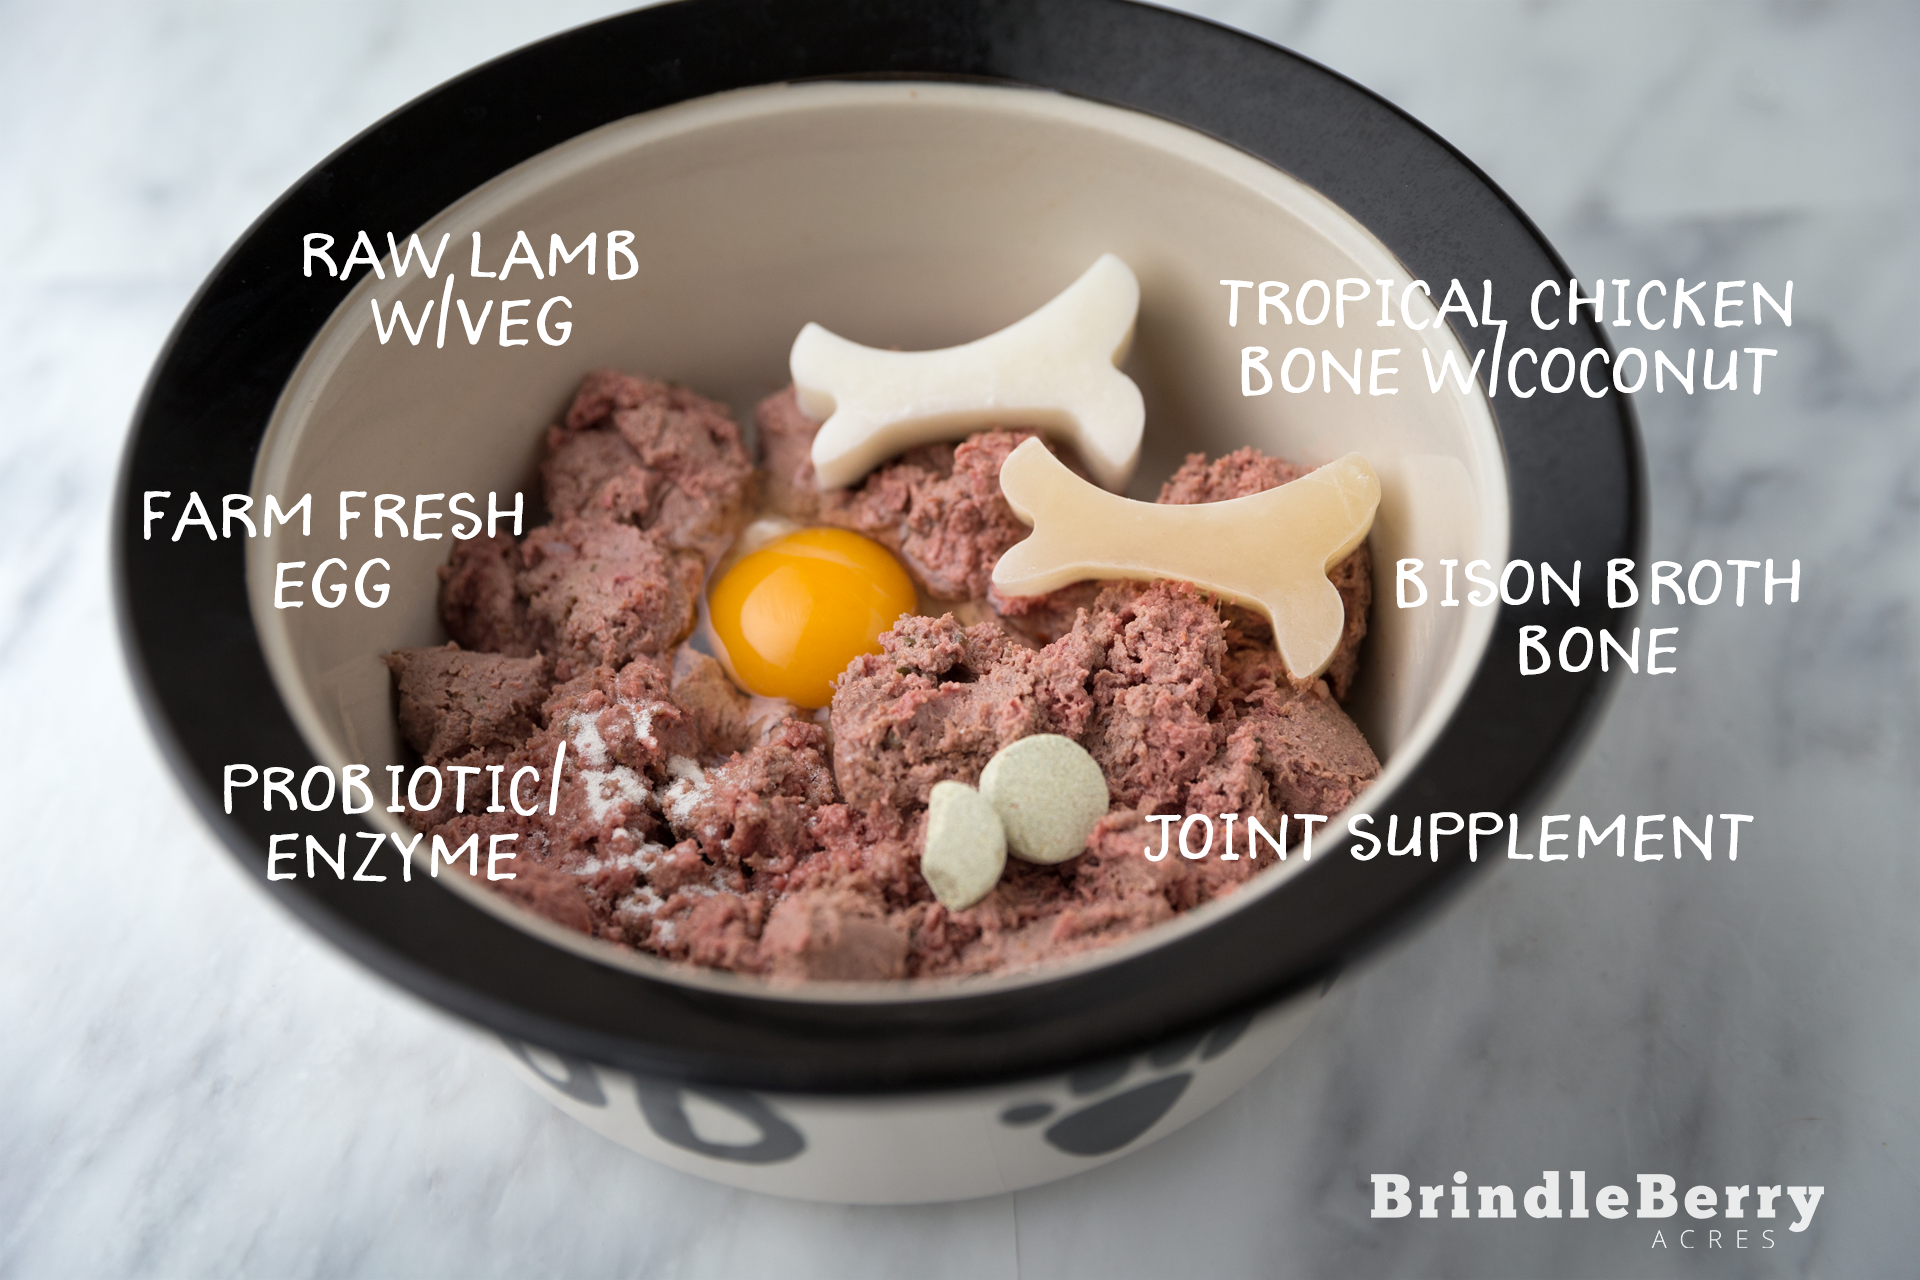 RAW LAMB DOG FOOD